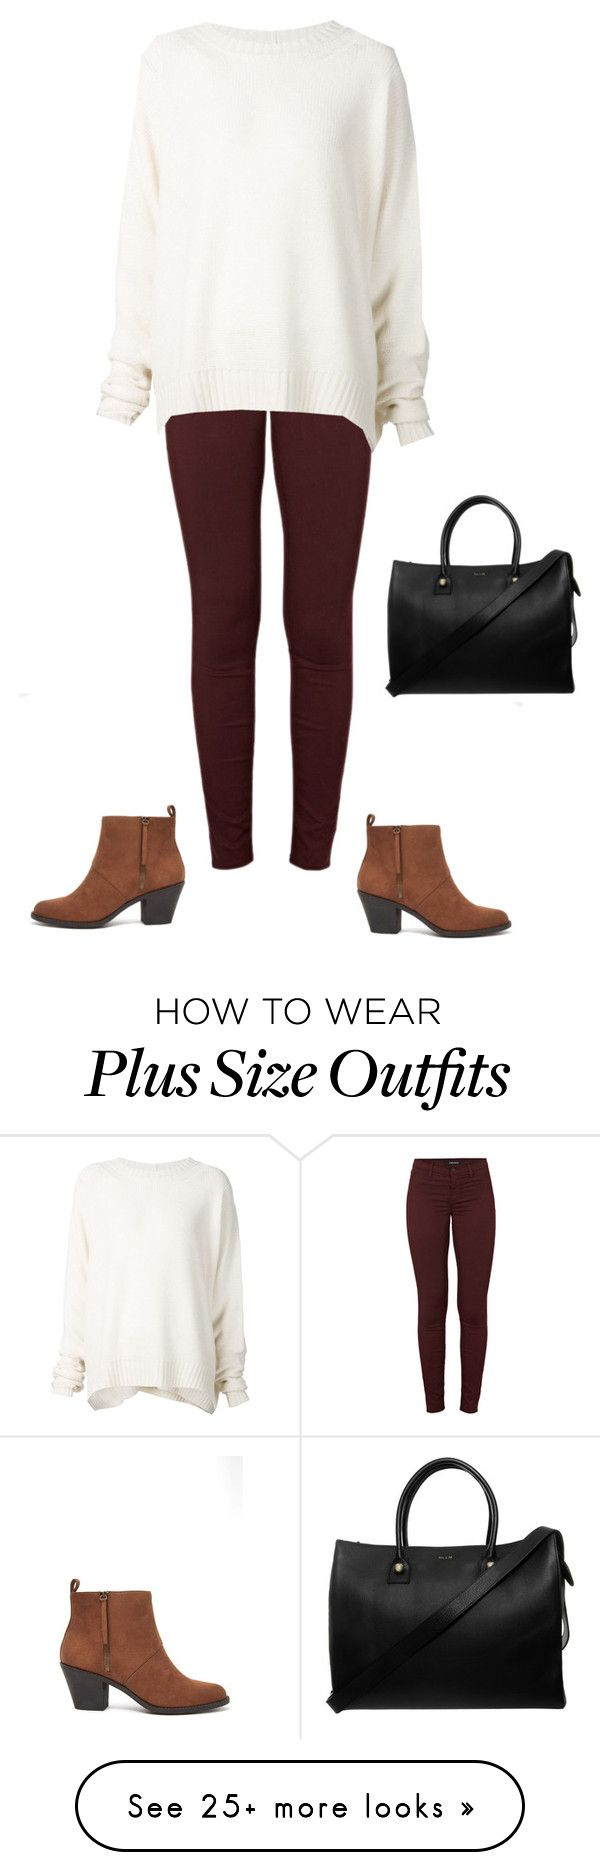 """""""Untitled #132"""" by zoedella on Polyvore featuring J Brand, Forever 21, URBAN ZEN, Paul & Joe and fallwinter2015"""